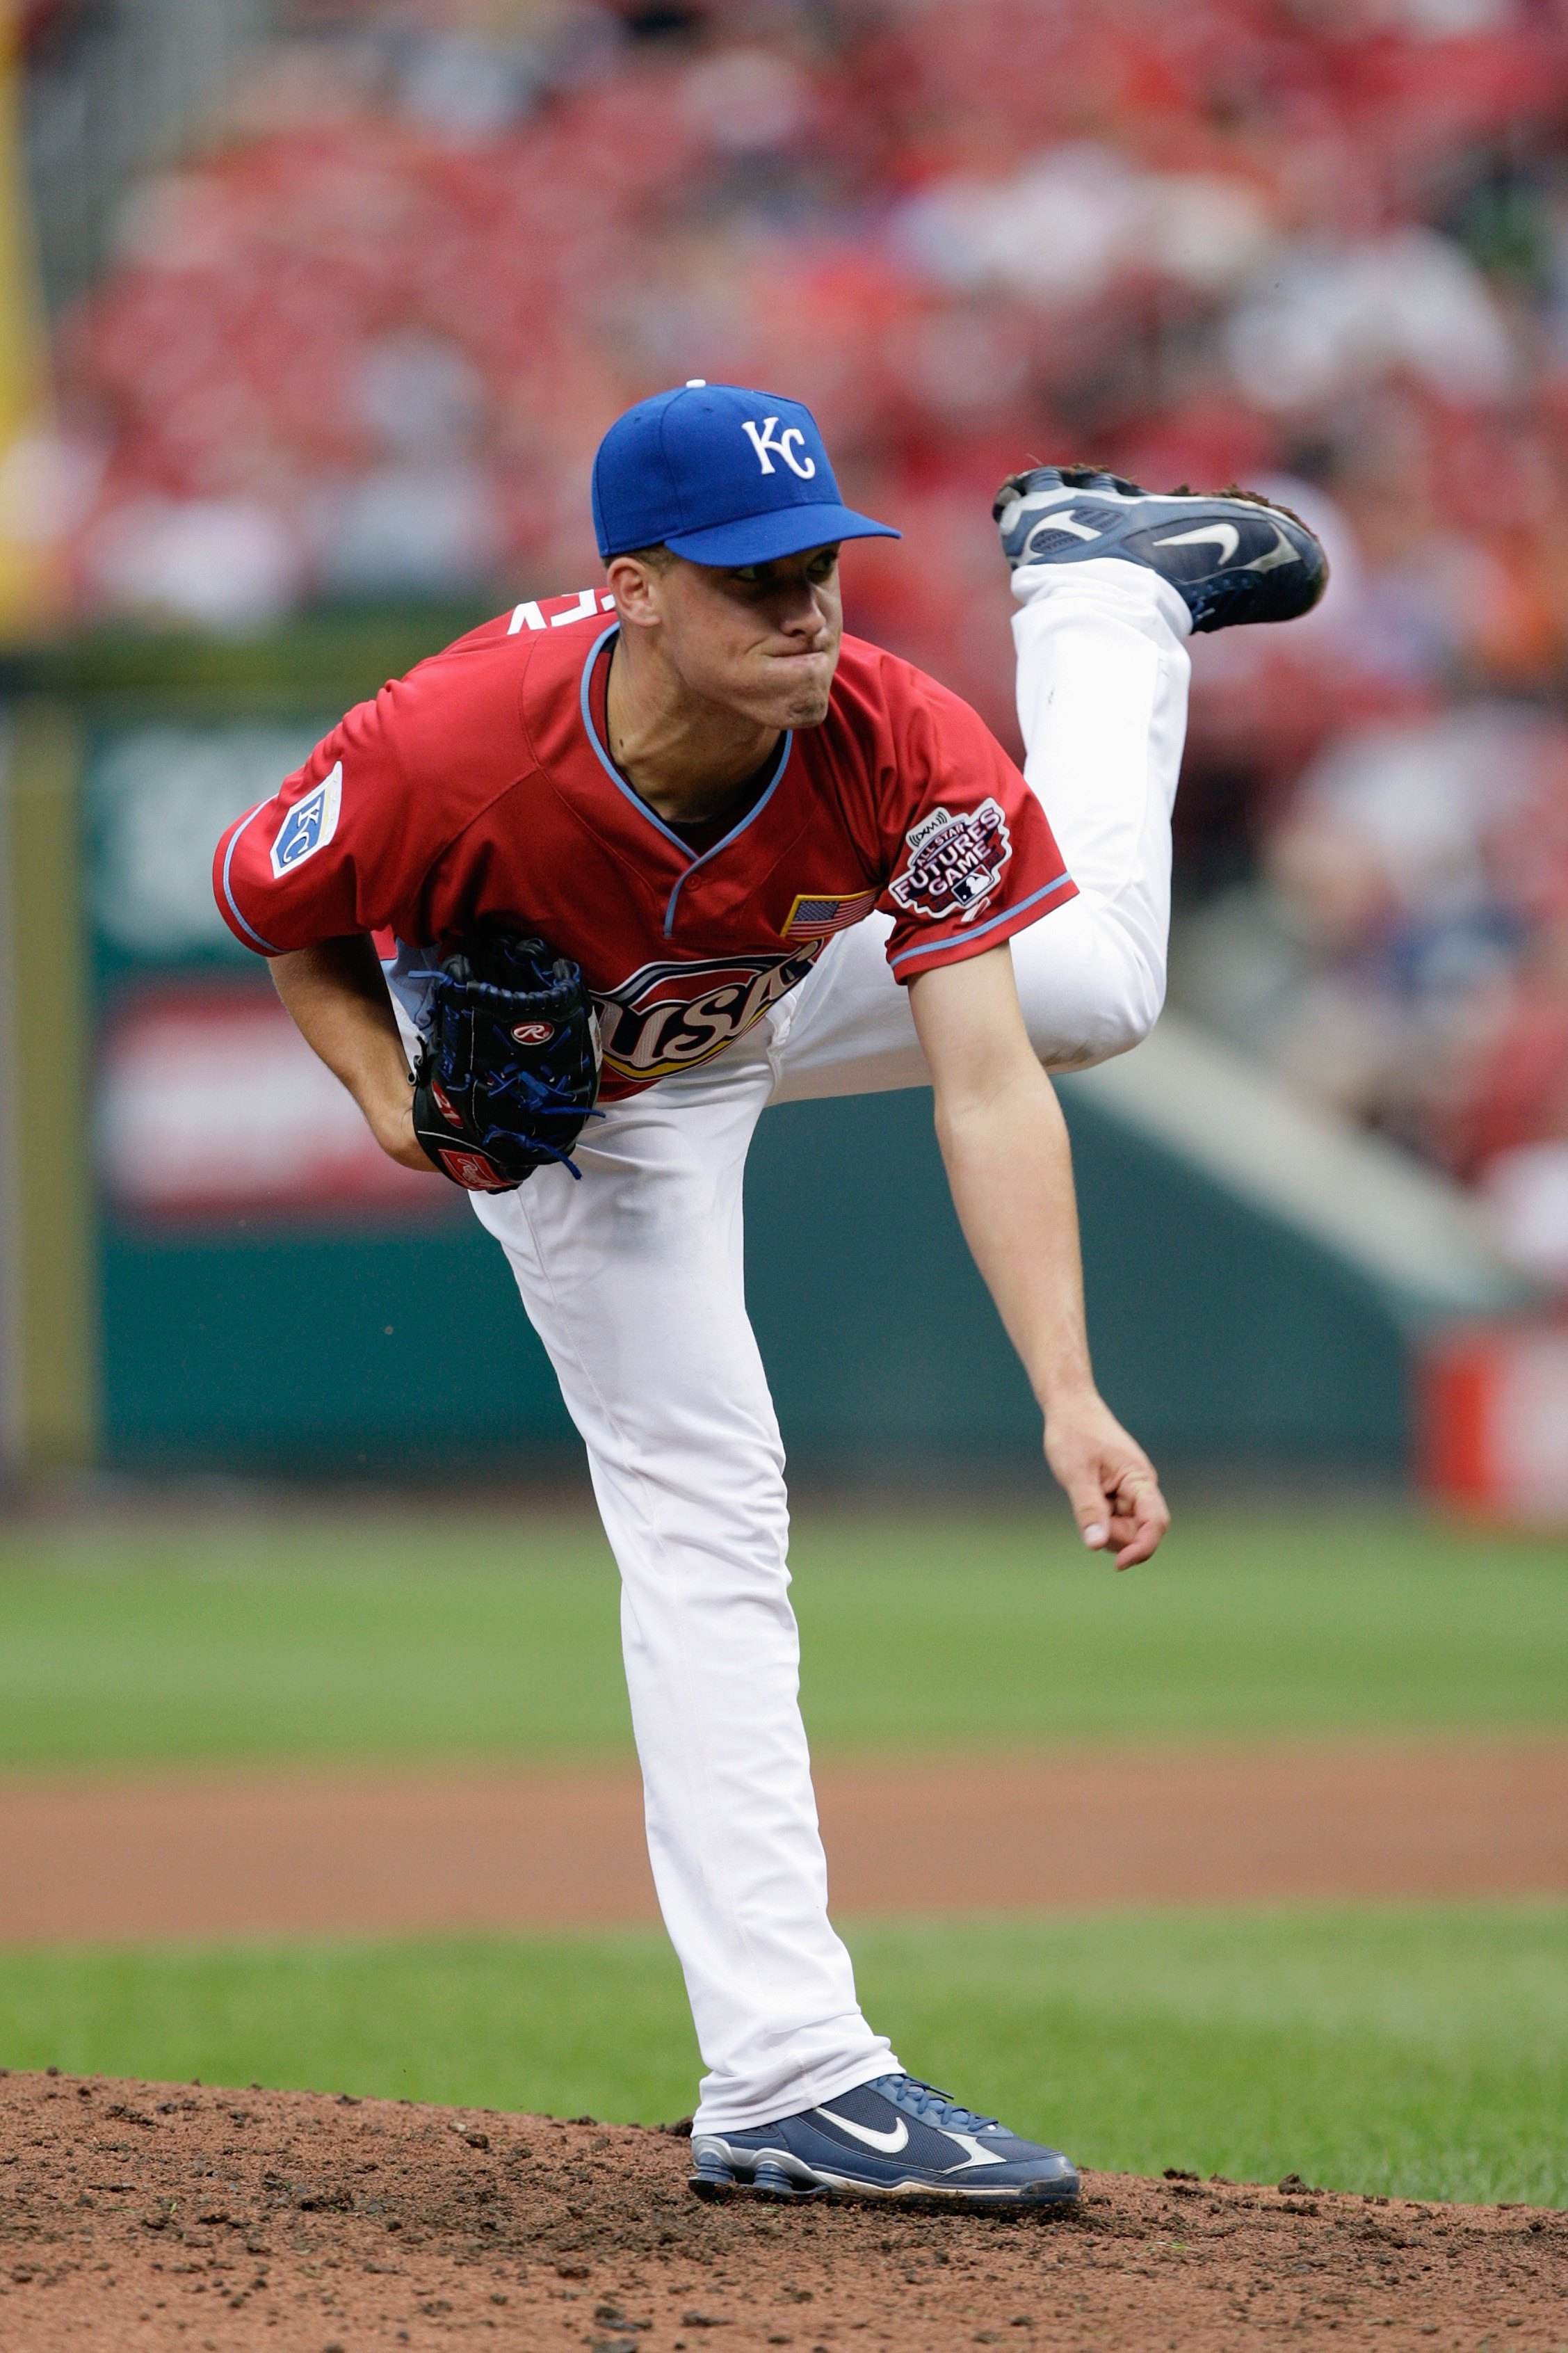 ST. LOUIS, MO - JULY 12: U.S. Futures All-Star Danny Duffy of the Kansas City Royals pitches during the 2009 XM All-Star Futures Game at Busch Stadium on July 12, 2009 in St. Louis, Missouri. (Photo by Jamie Squire/Getty Images)